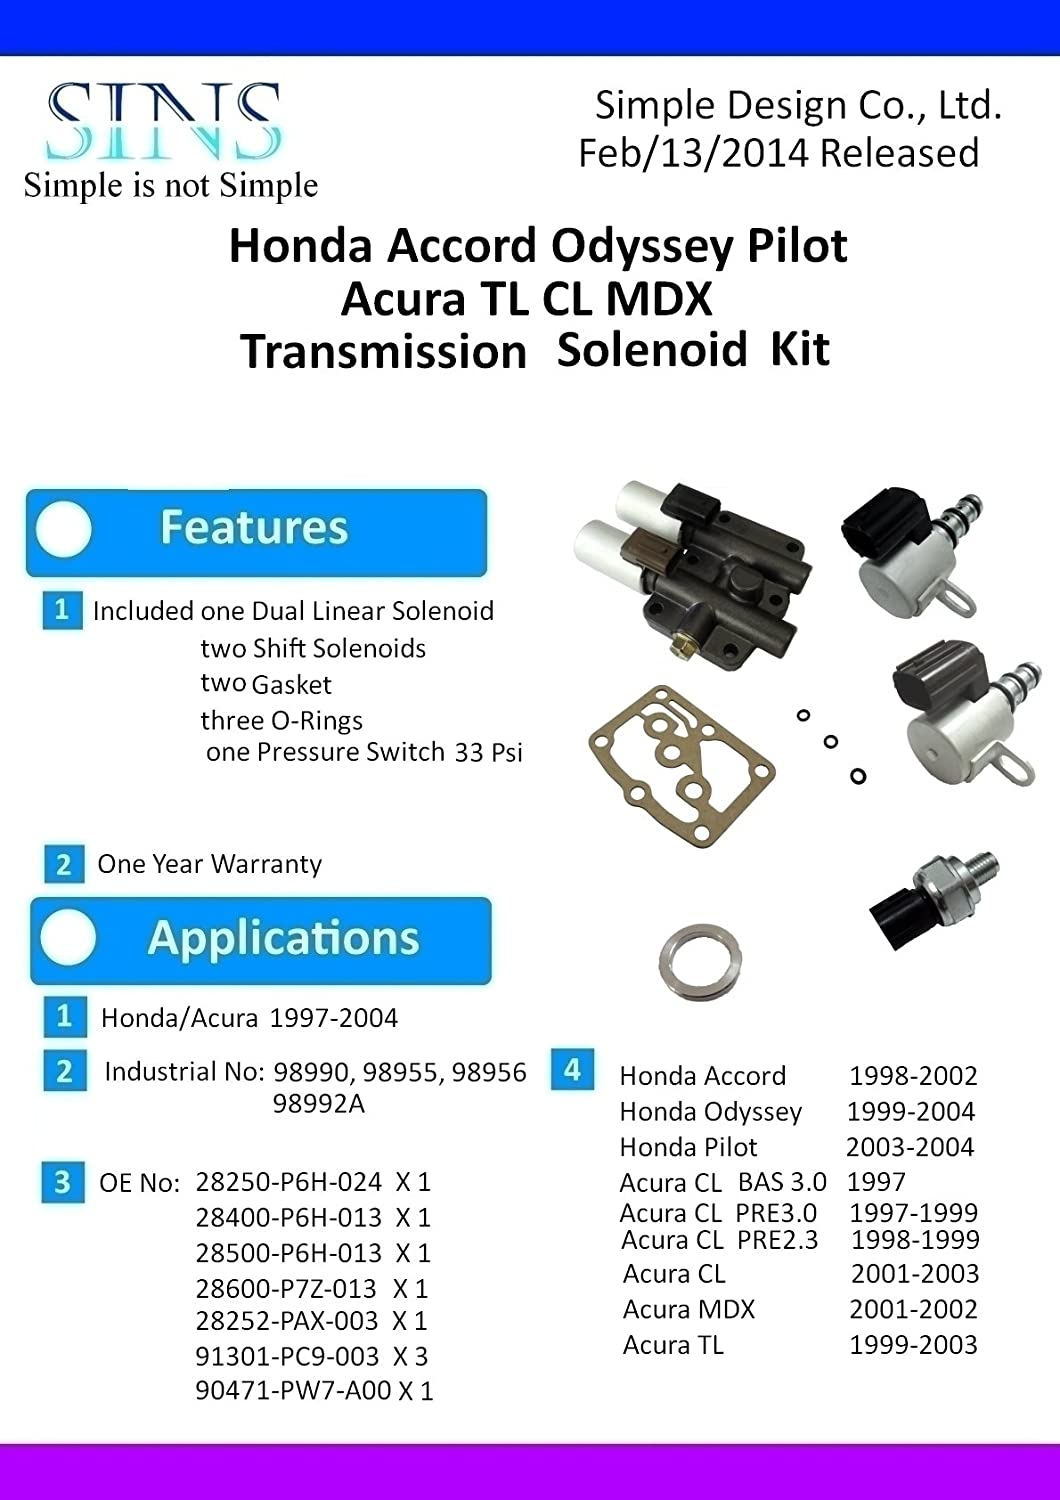 amazon com honda accord odyssey pilot acura cl tl mdx transmission